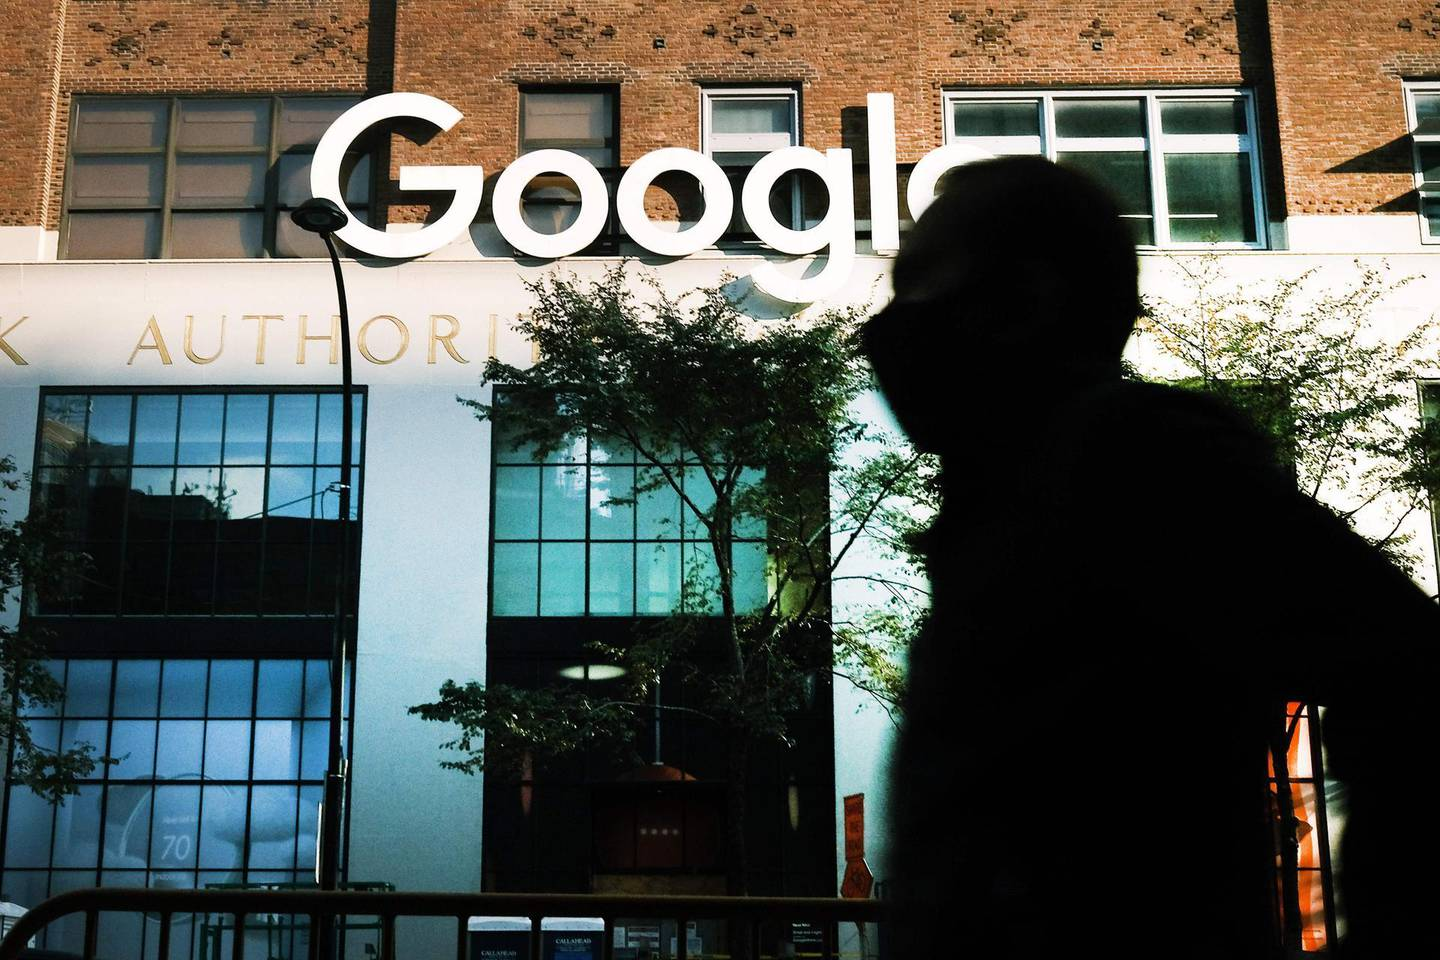 (FILES) In this file photo Google's offices stand in downtown Manhattan on October 20, 2020 in New York City.  Employees at Google and other units of parent firm Alphabet announced the creation January 4, 2021 of a union, aiming for a bigger role in company decisions in a move which steps up the activism brewing in Silicon Valley giants. The Alphabet Workers Union, affiliated with the Communications Workers of America, aims to represent well-compensated tech workers as well as temporary workers and contractors, according to a statement.  / AFP / GETTY IMAGES NORTH AMERICA / SPENCER PLATT